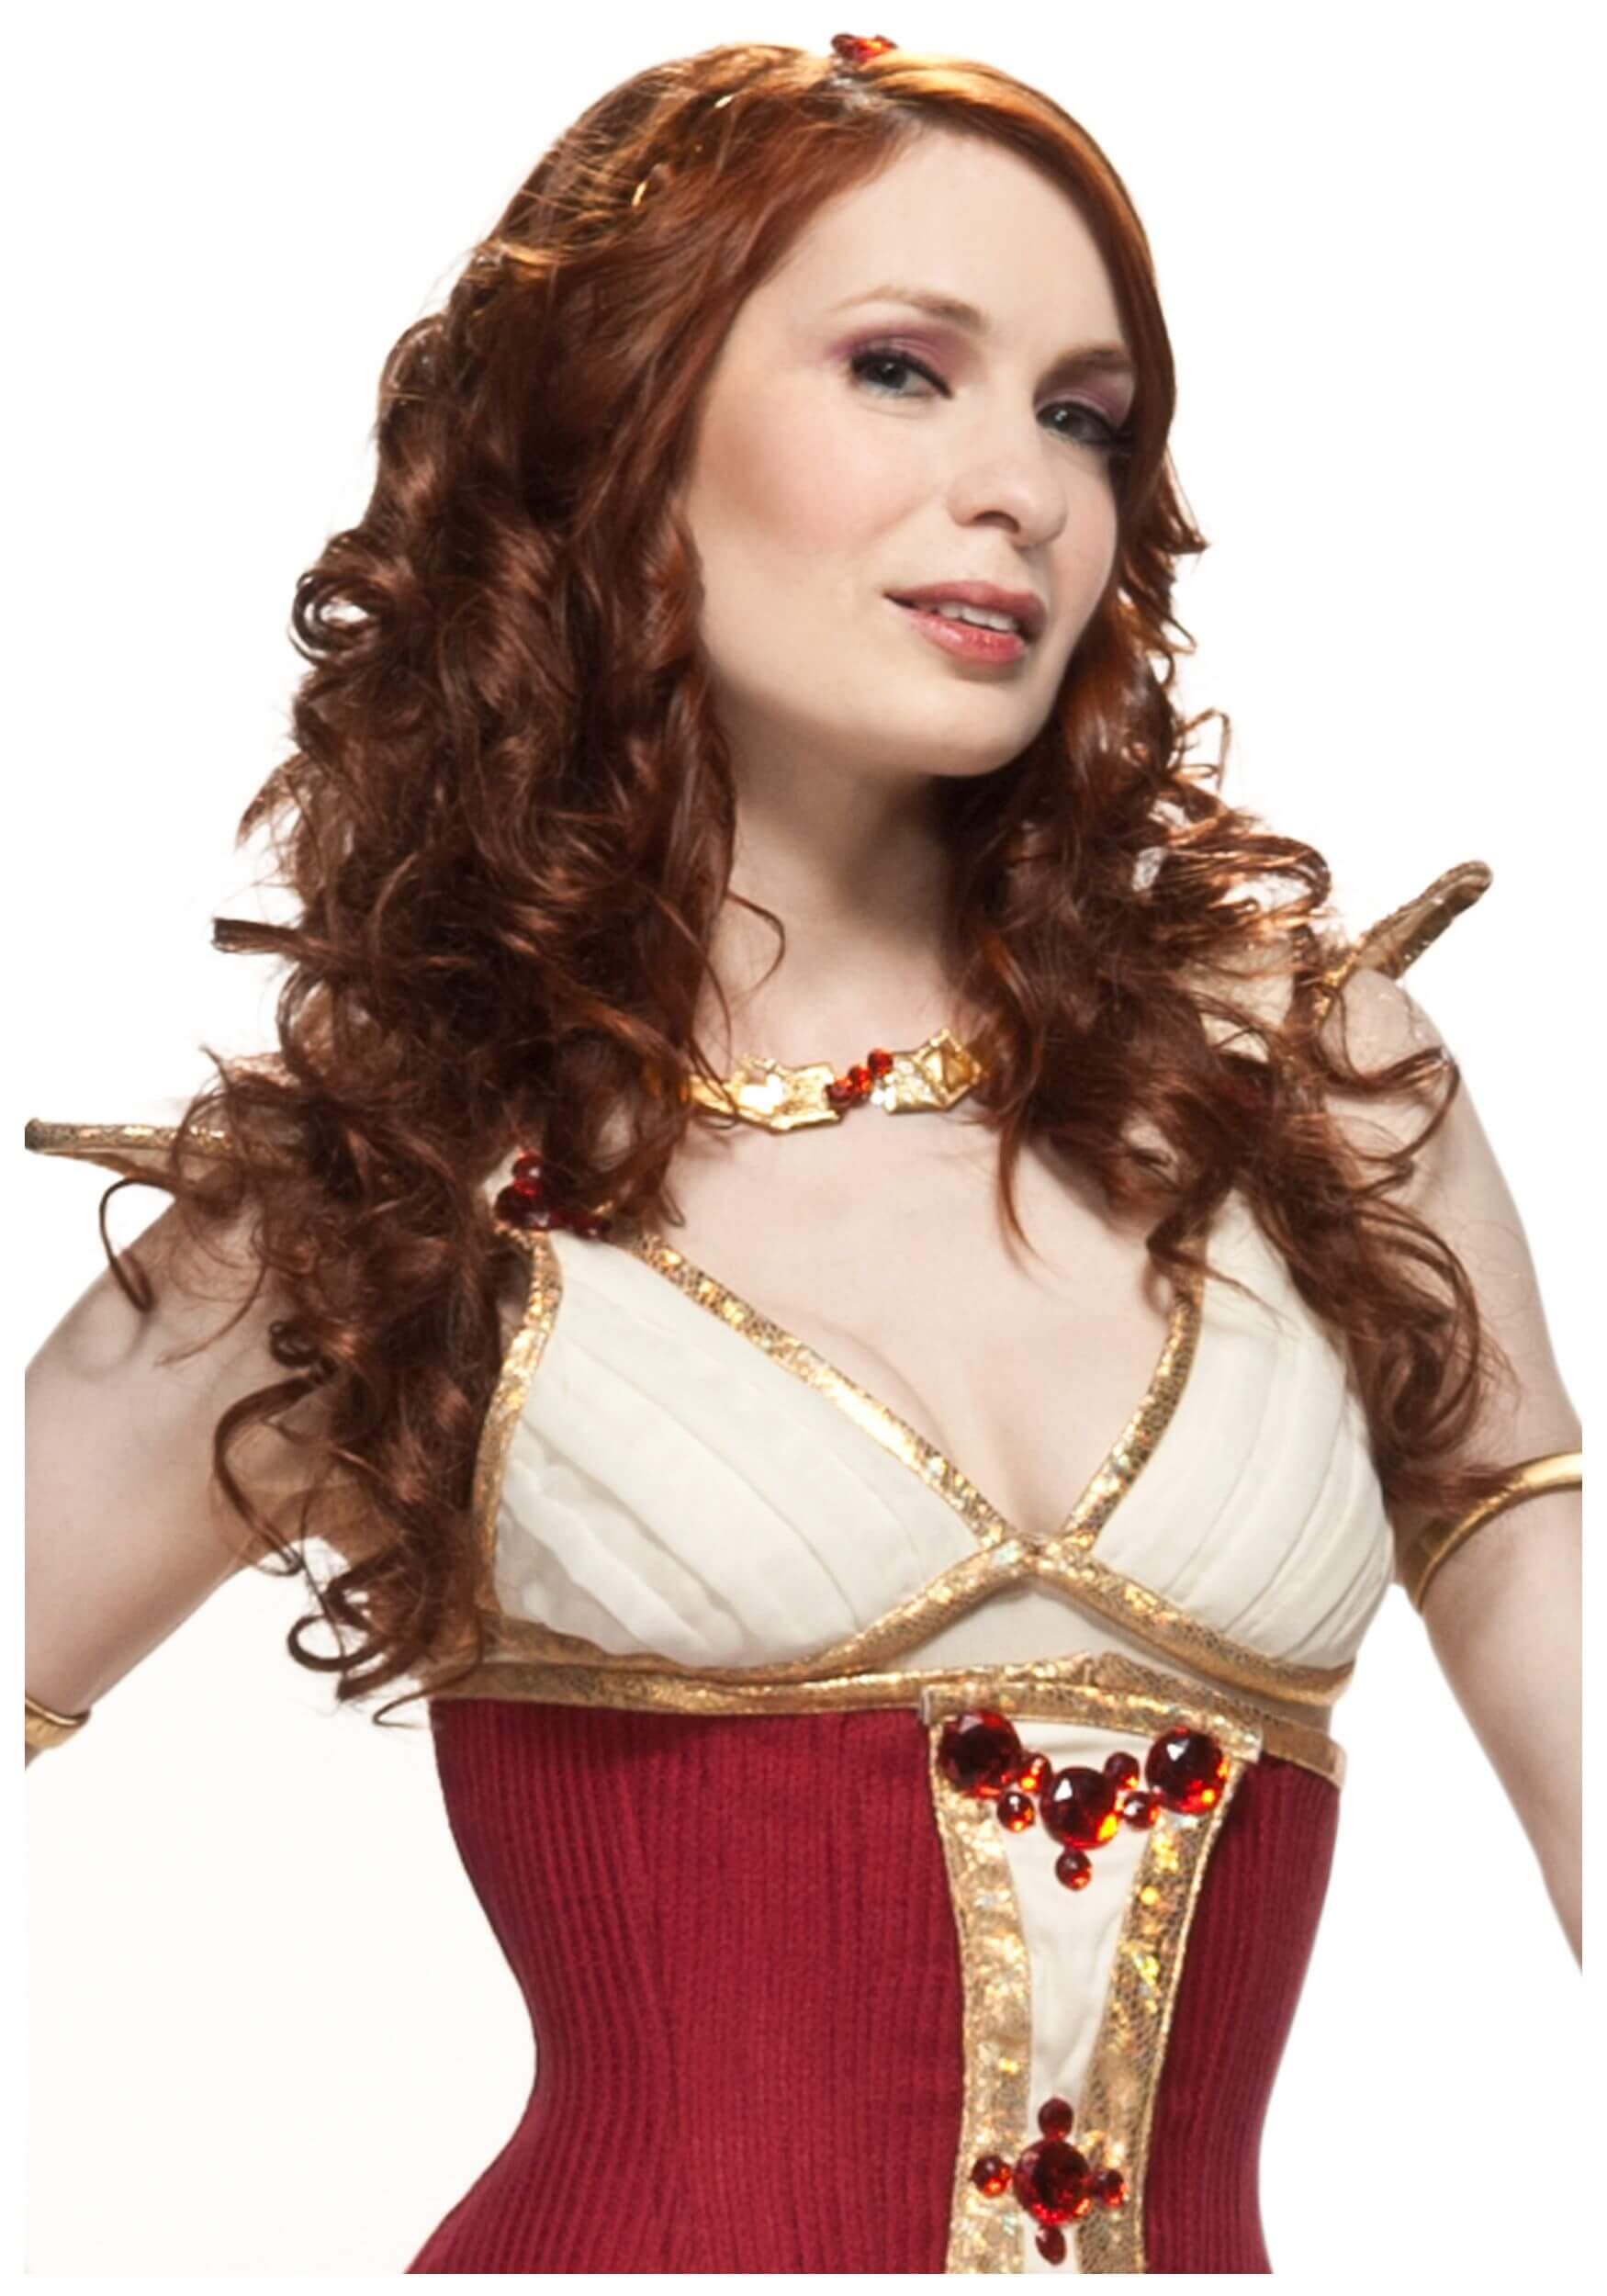 Felicia Day cleavage